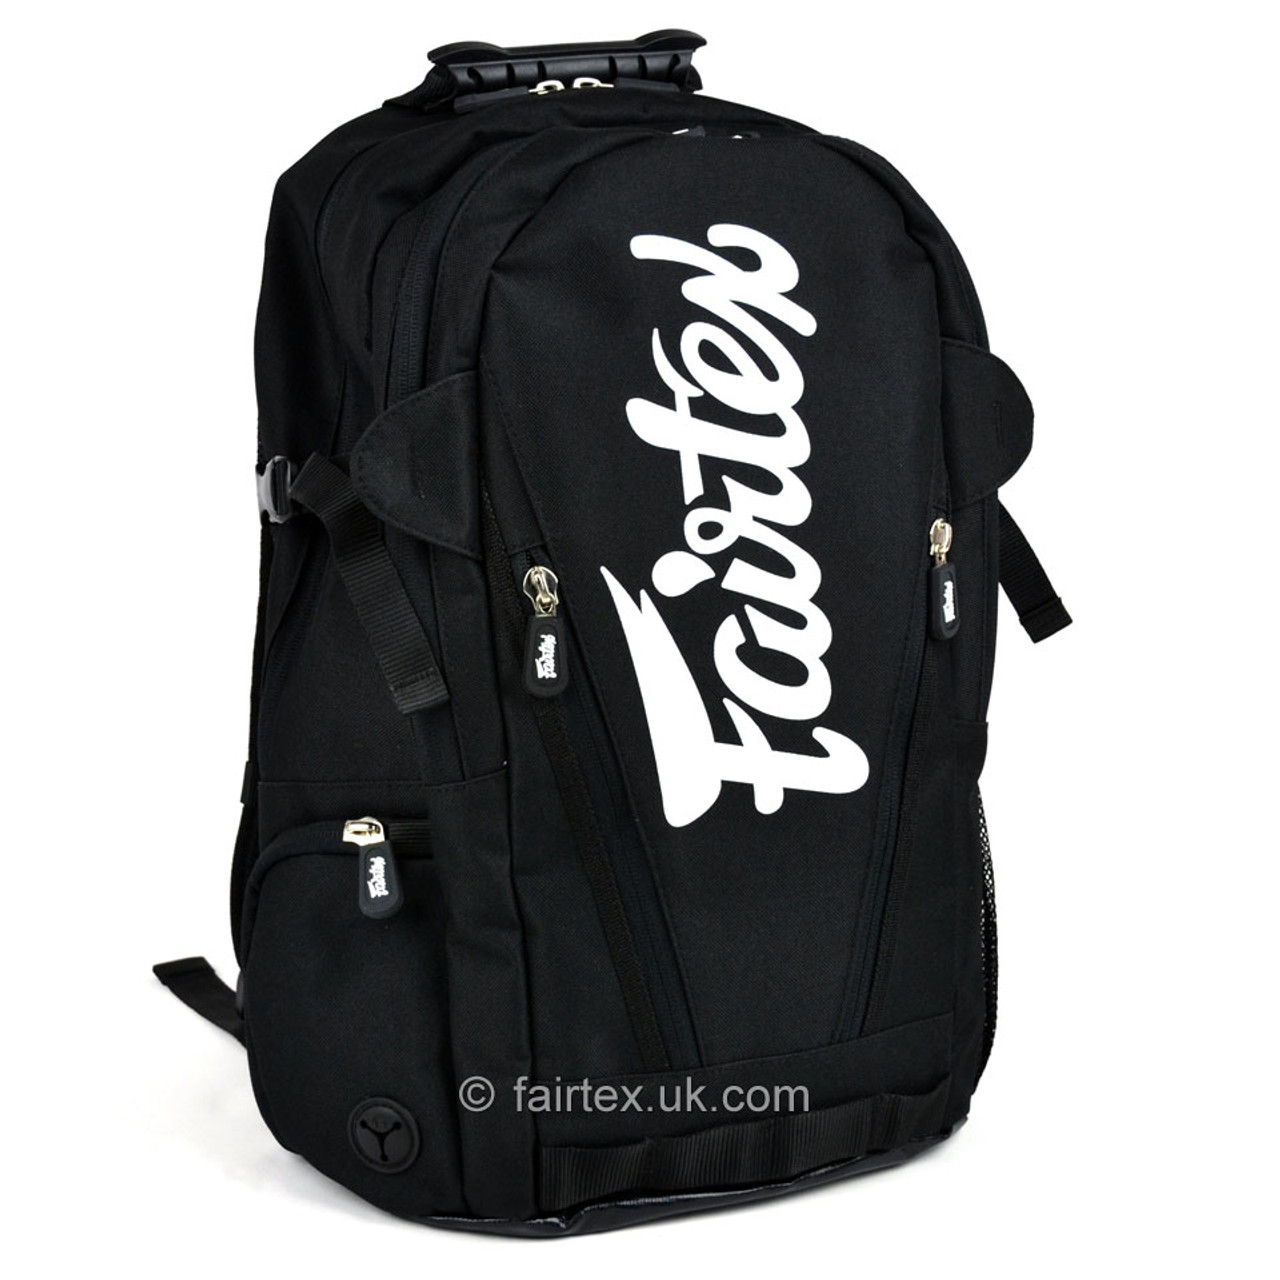 6996fc2192b9 Fairtex BAG8 Compact Rucksack Black Hawk